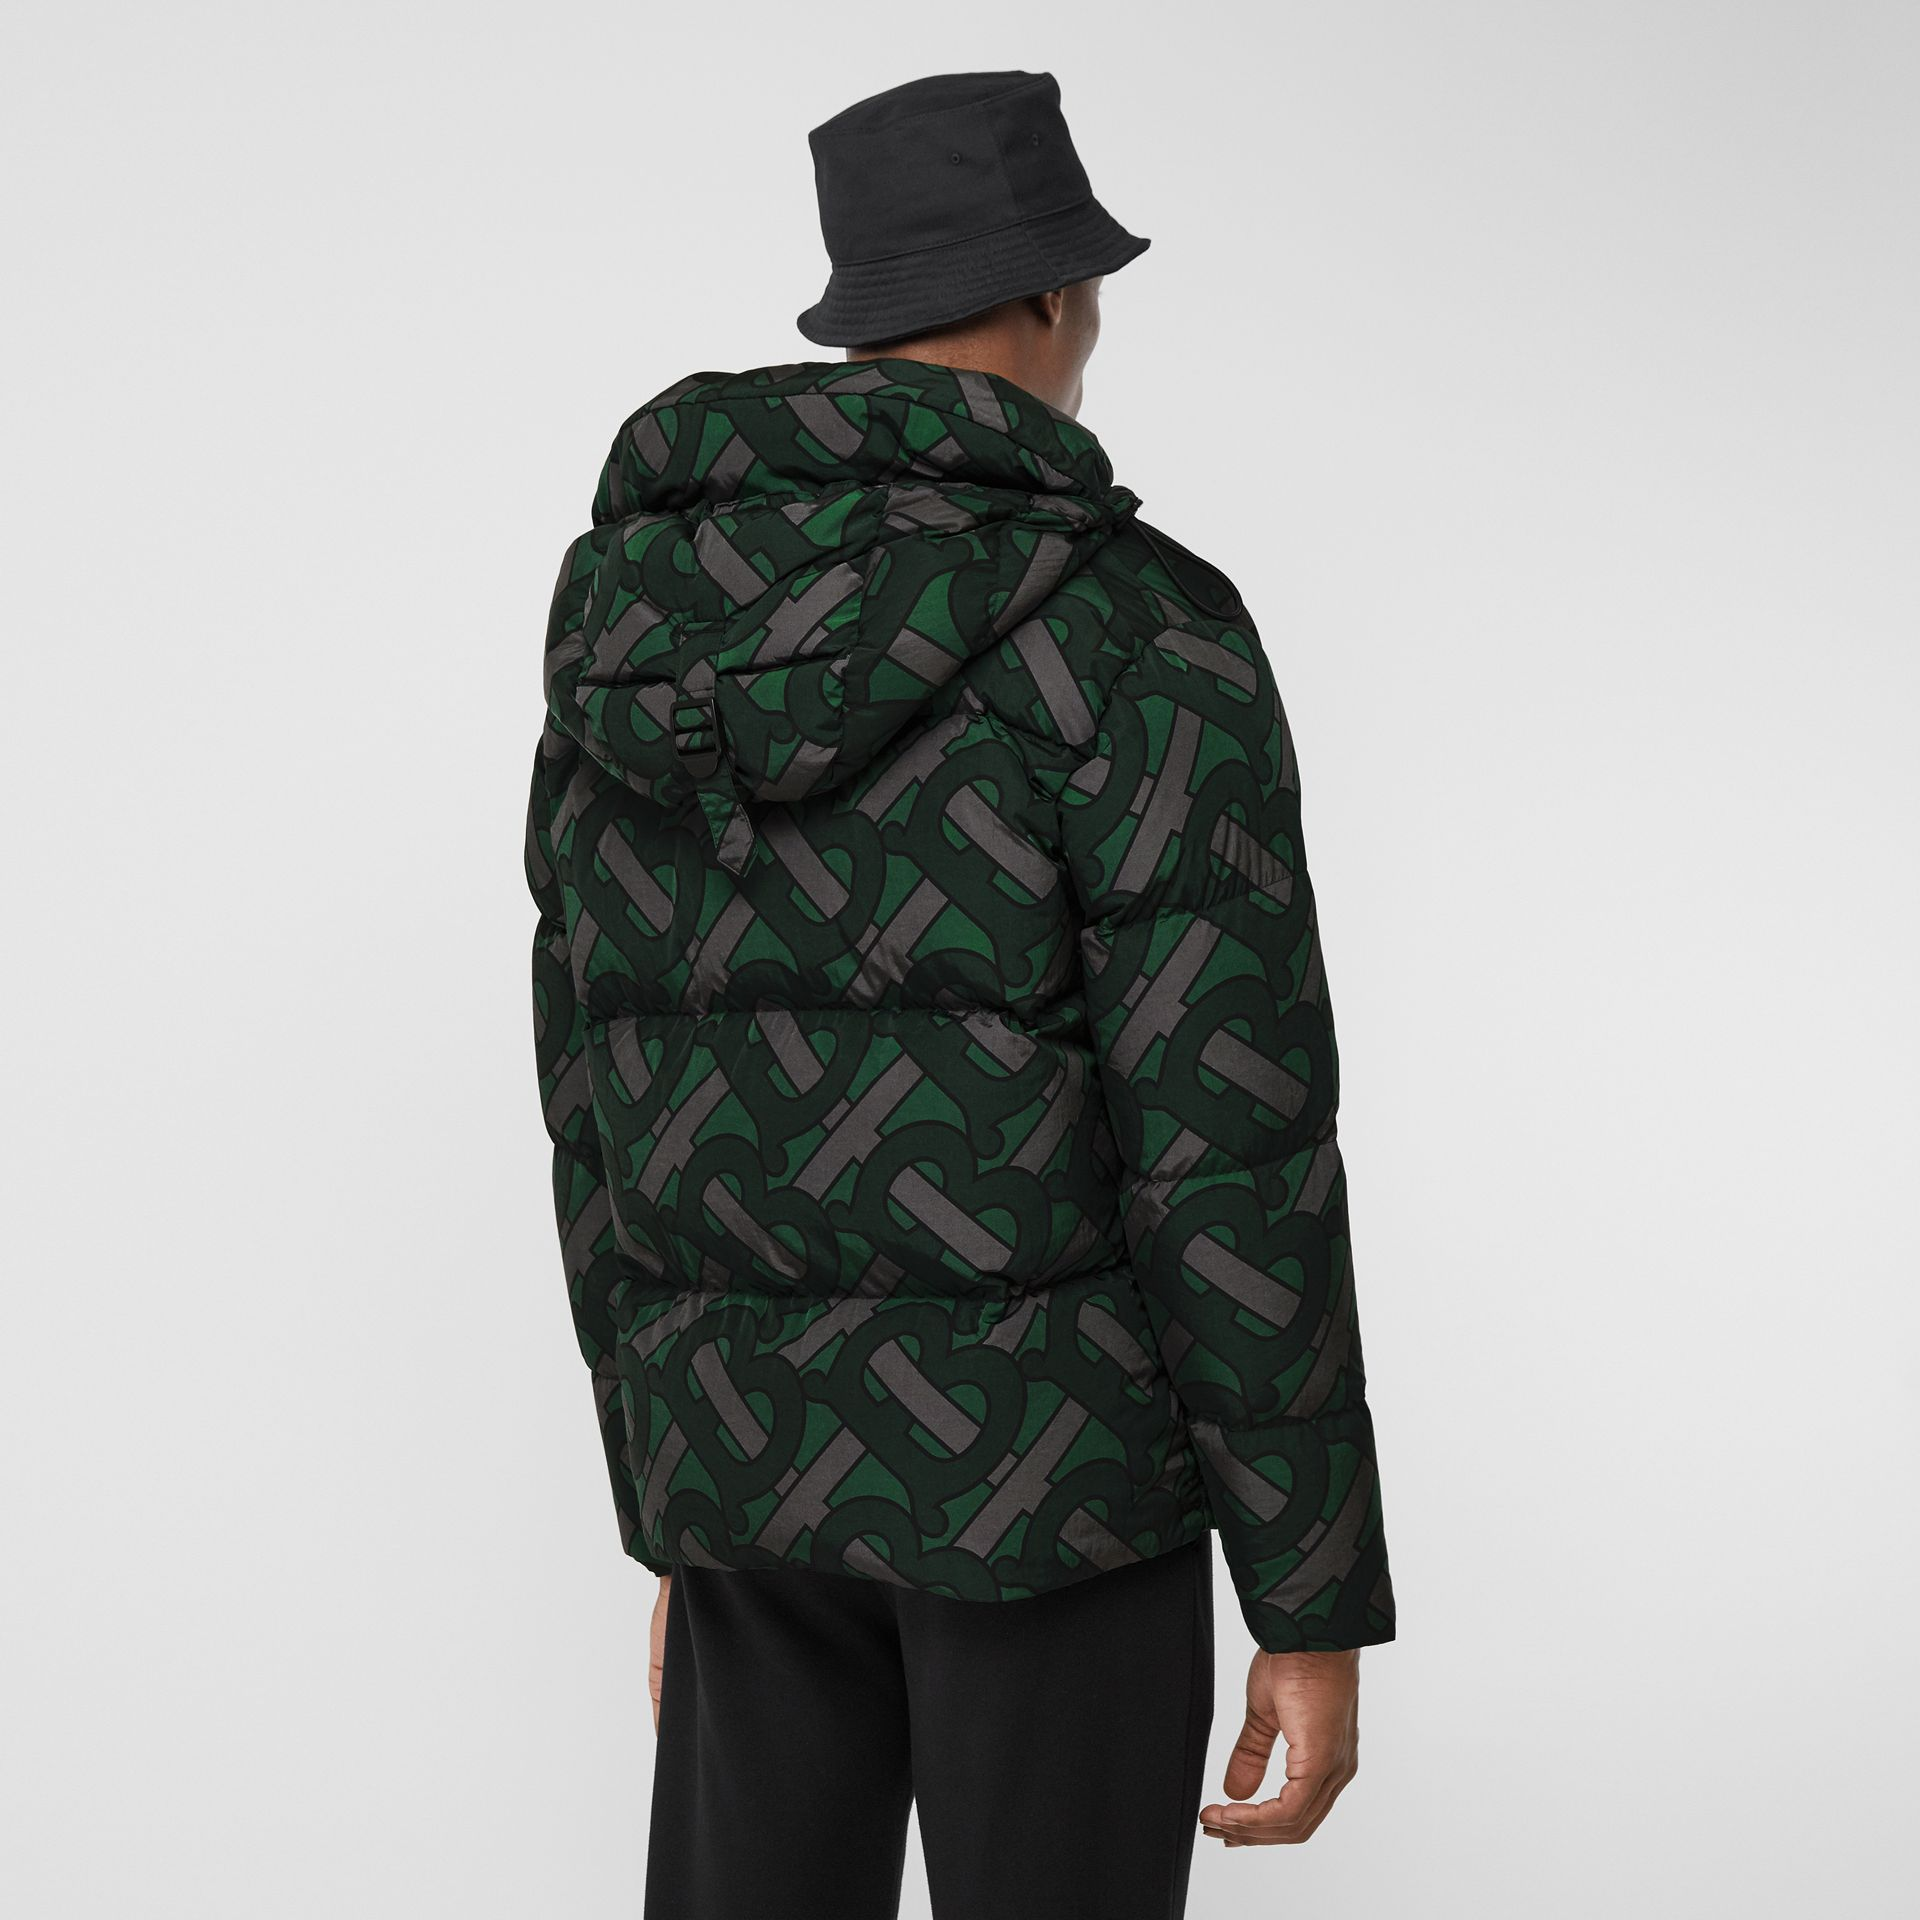 Monogram Print Puffer Jacket in Forest Green | Burberry - gallery image 7